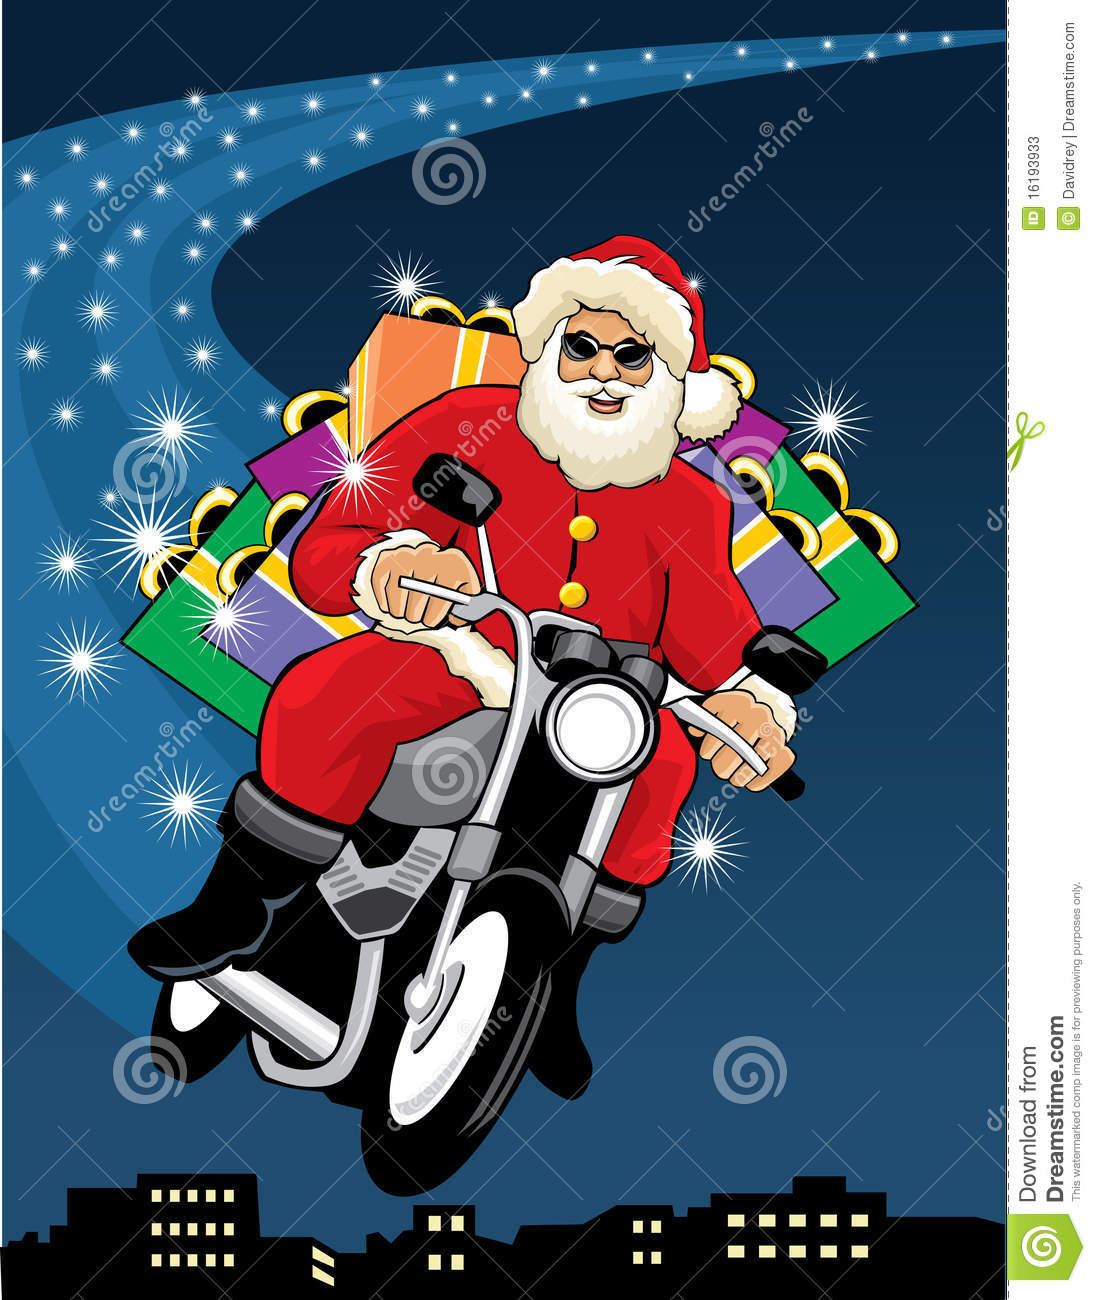 Santa claus riding a motorcycle stock vector illustration of santa claus riding a motorcycle jeuxipadfo Choice Image